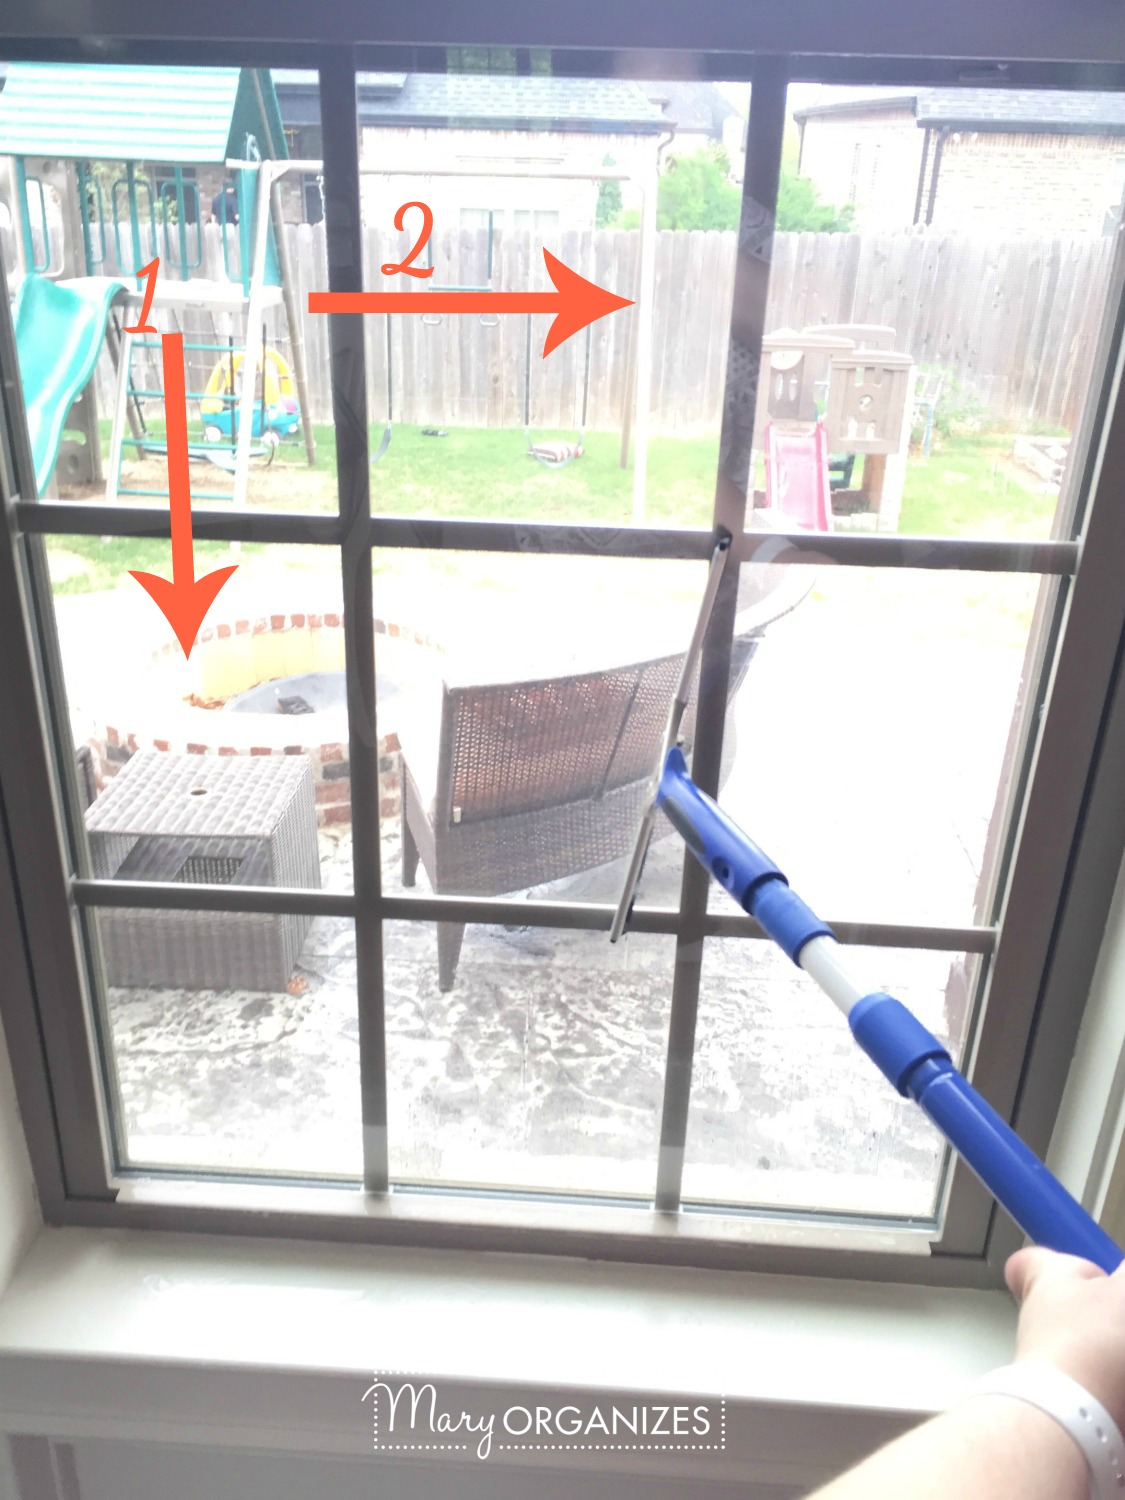 Two Ways To Clean Windows - squeegee -v